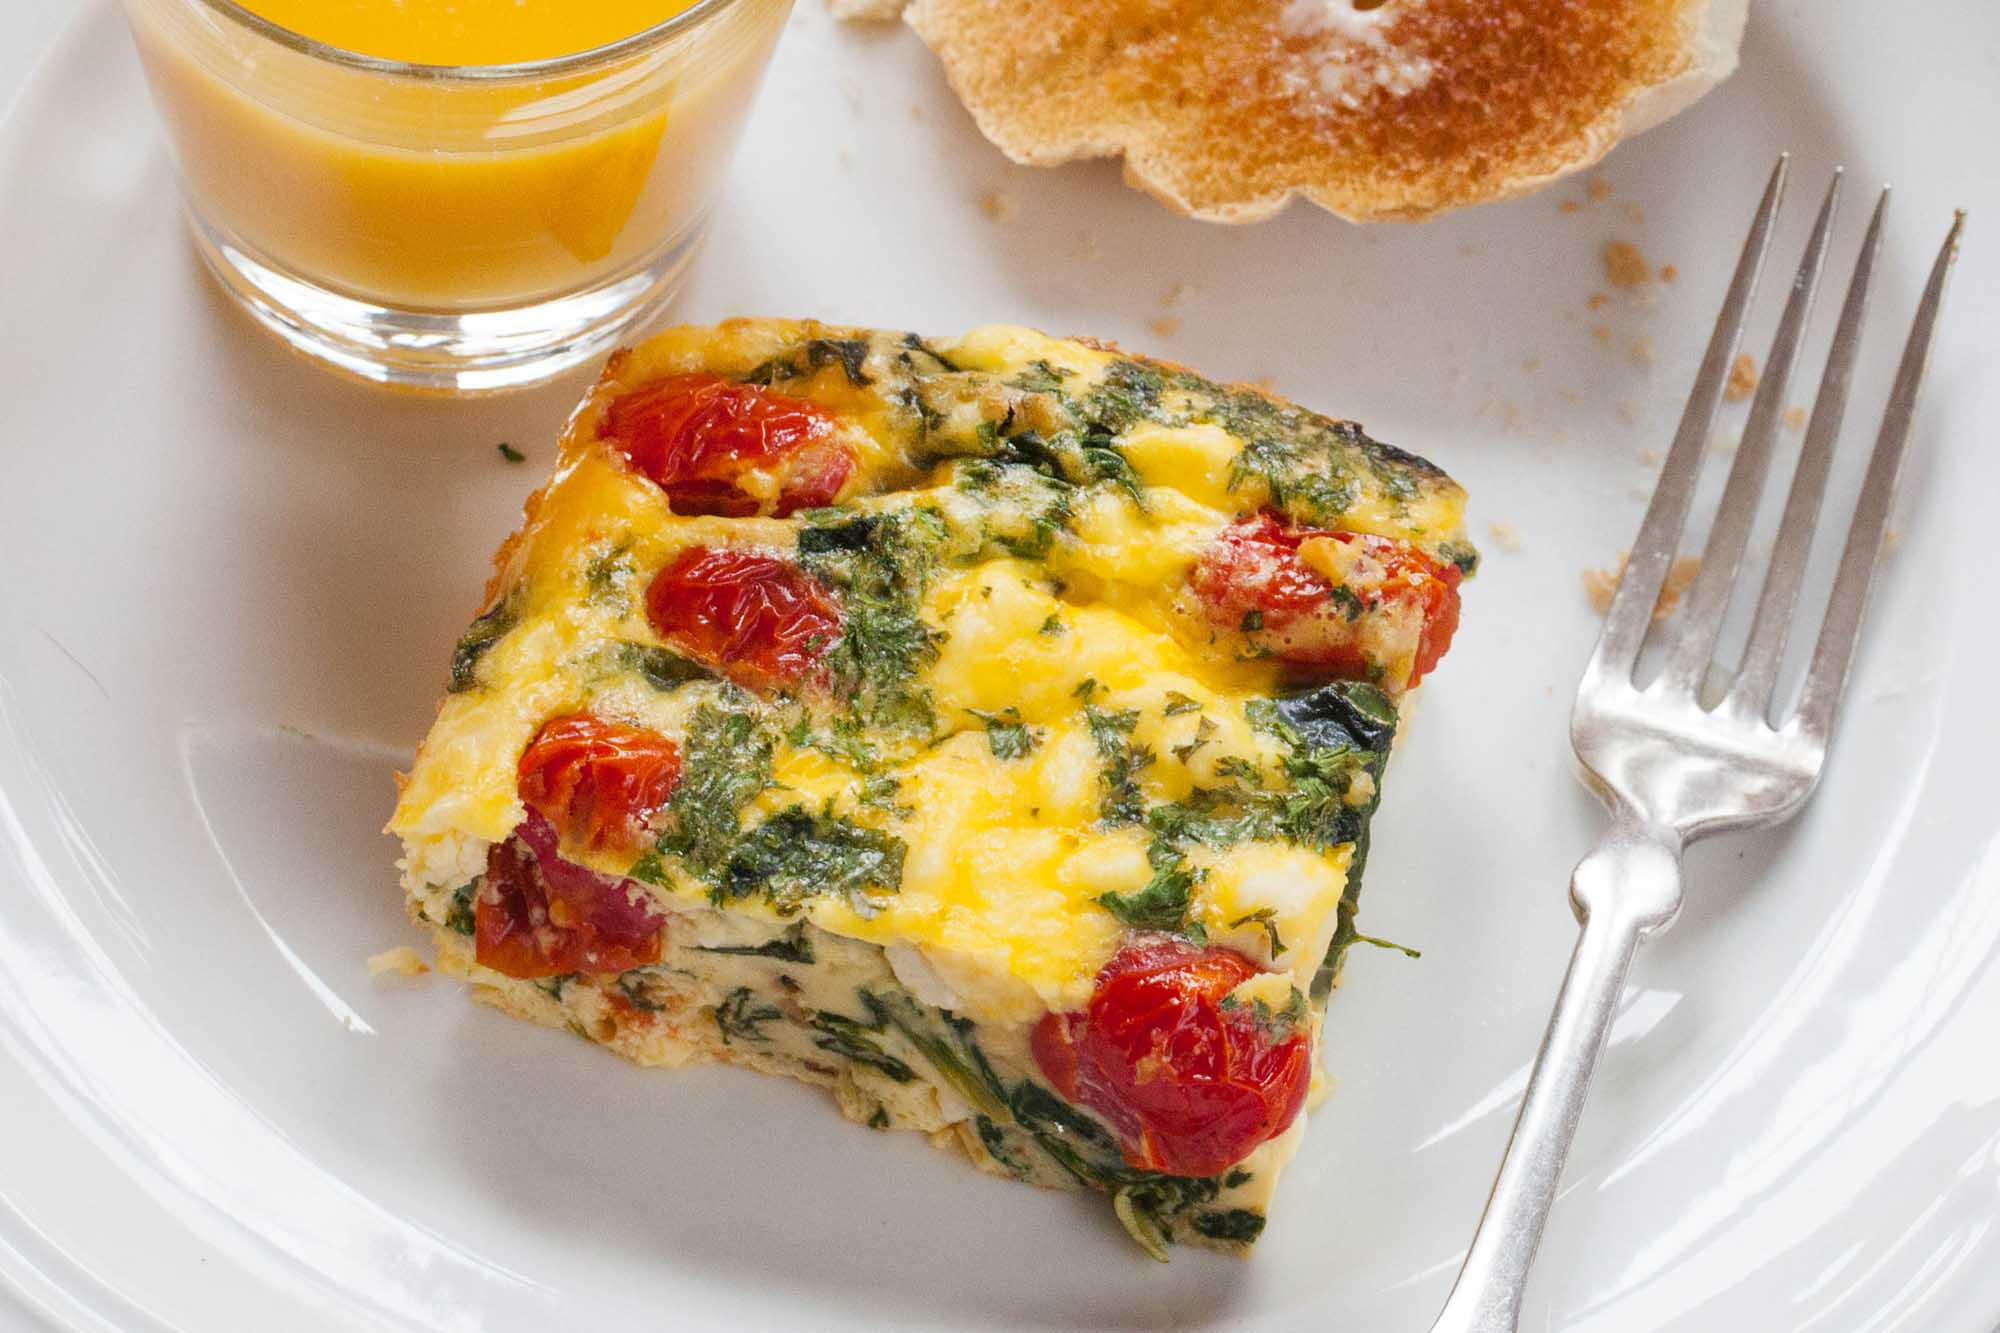 Make-ahead Frittata Squares with Spinach, Tomatoes, and Feta